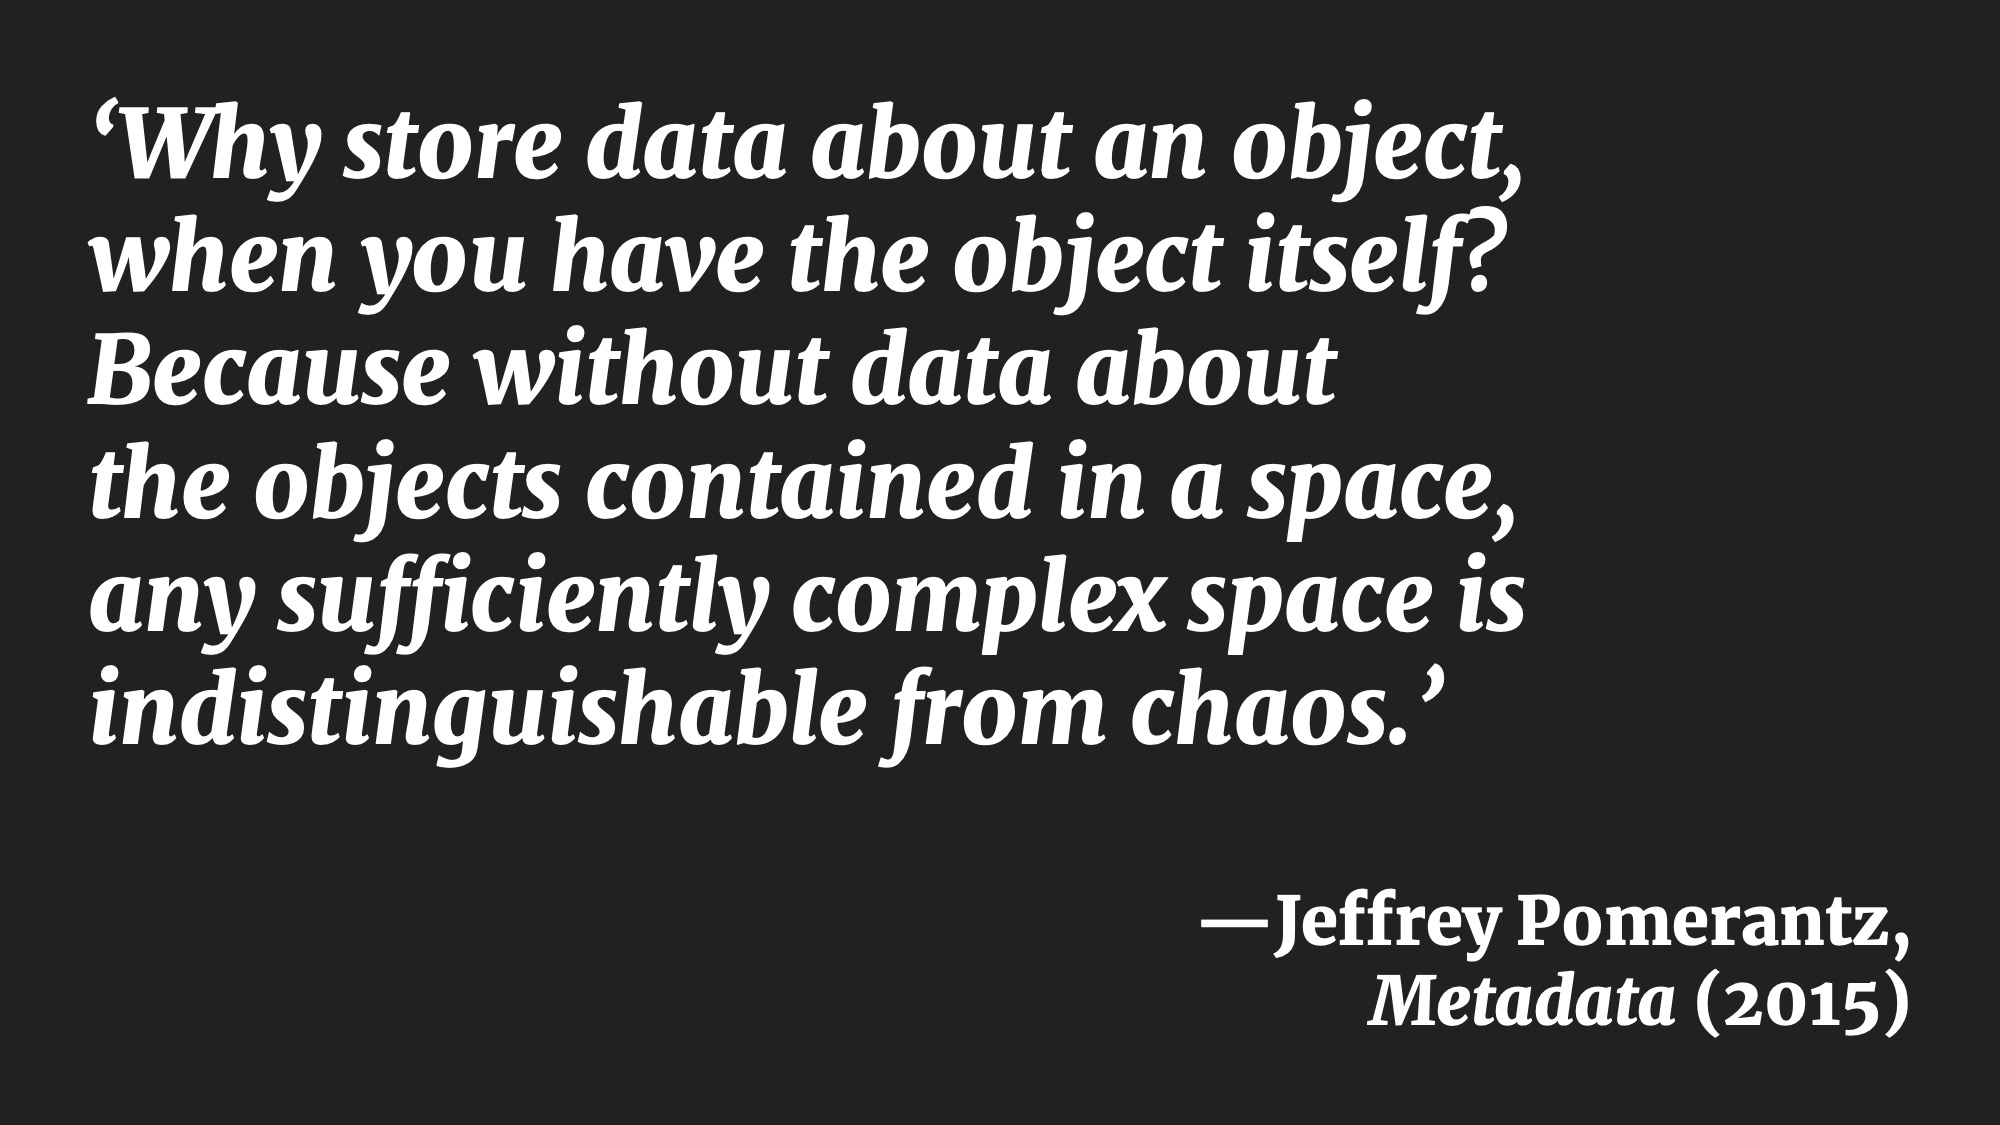 'Why store data about an object, when you have the object itself? Because without data about the objects contained in a space, any sufficiently complex space is indistinguishable from chaos.' —Jeffrey Pomerantz, Metadata (2015)